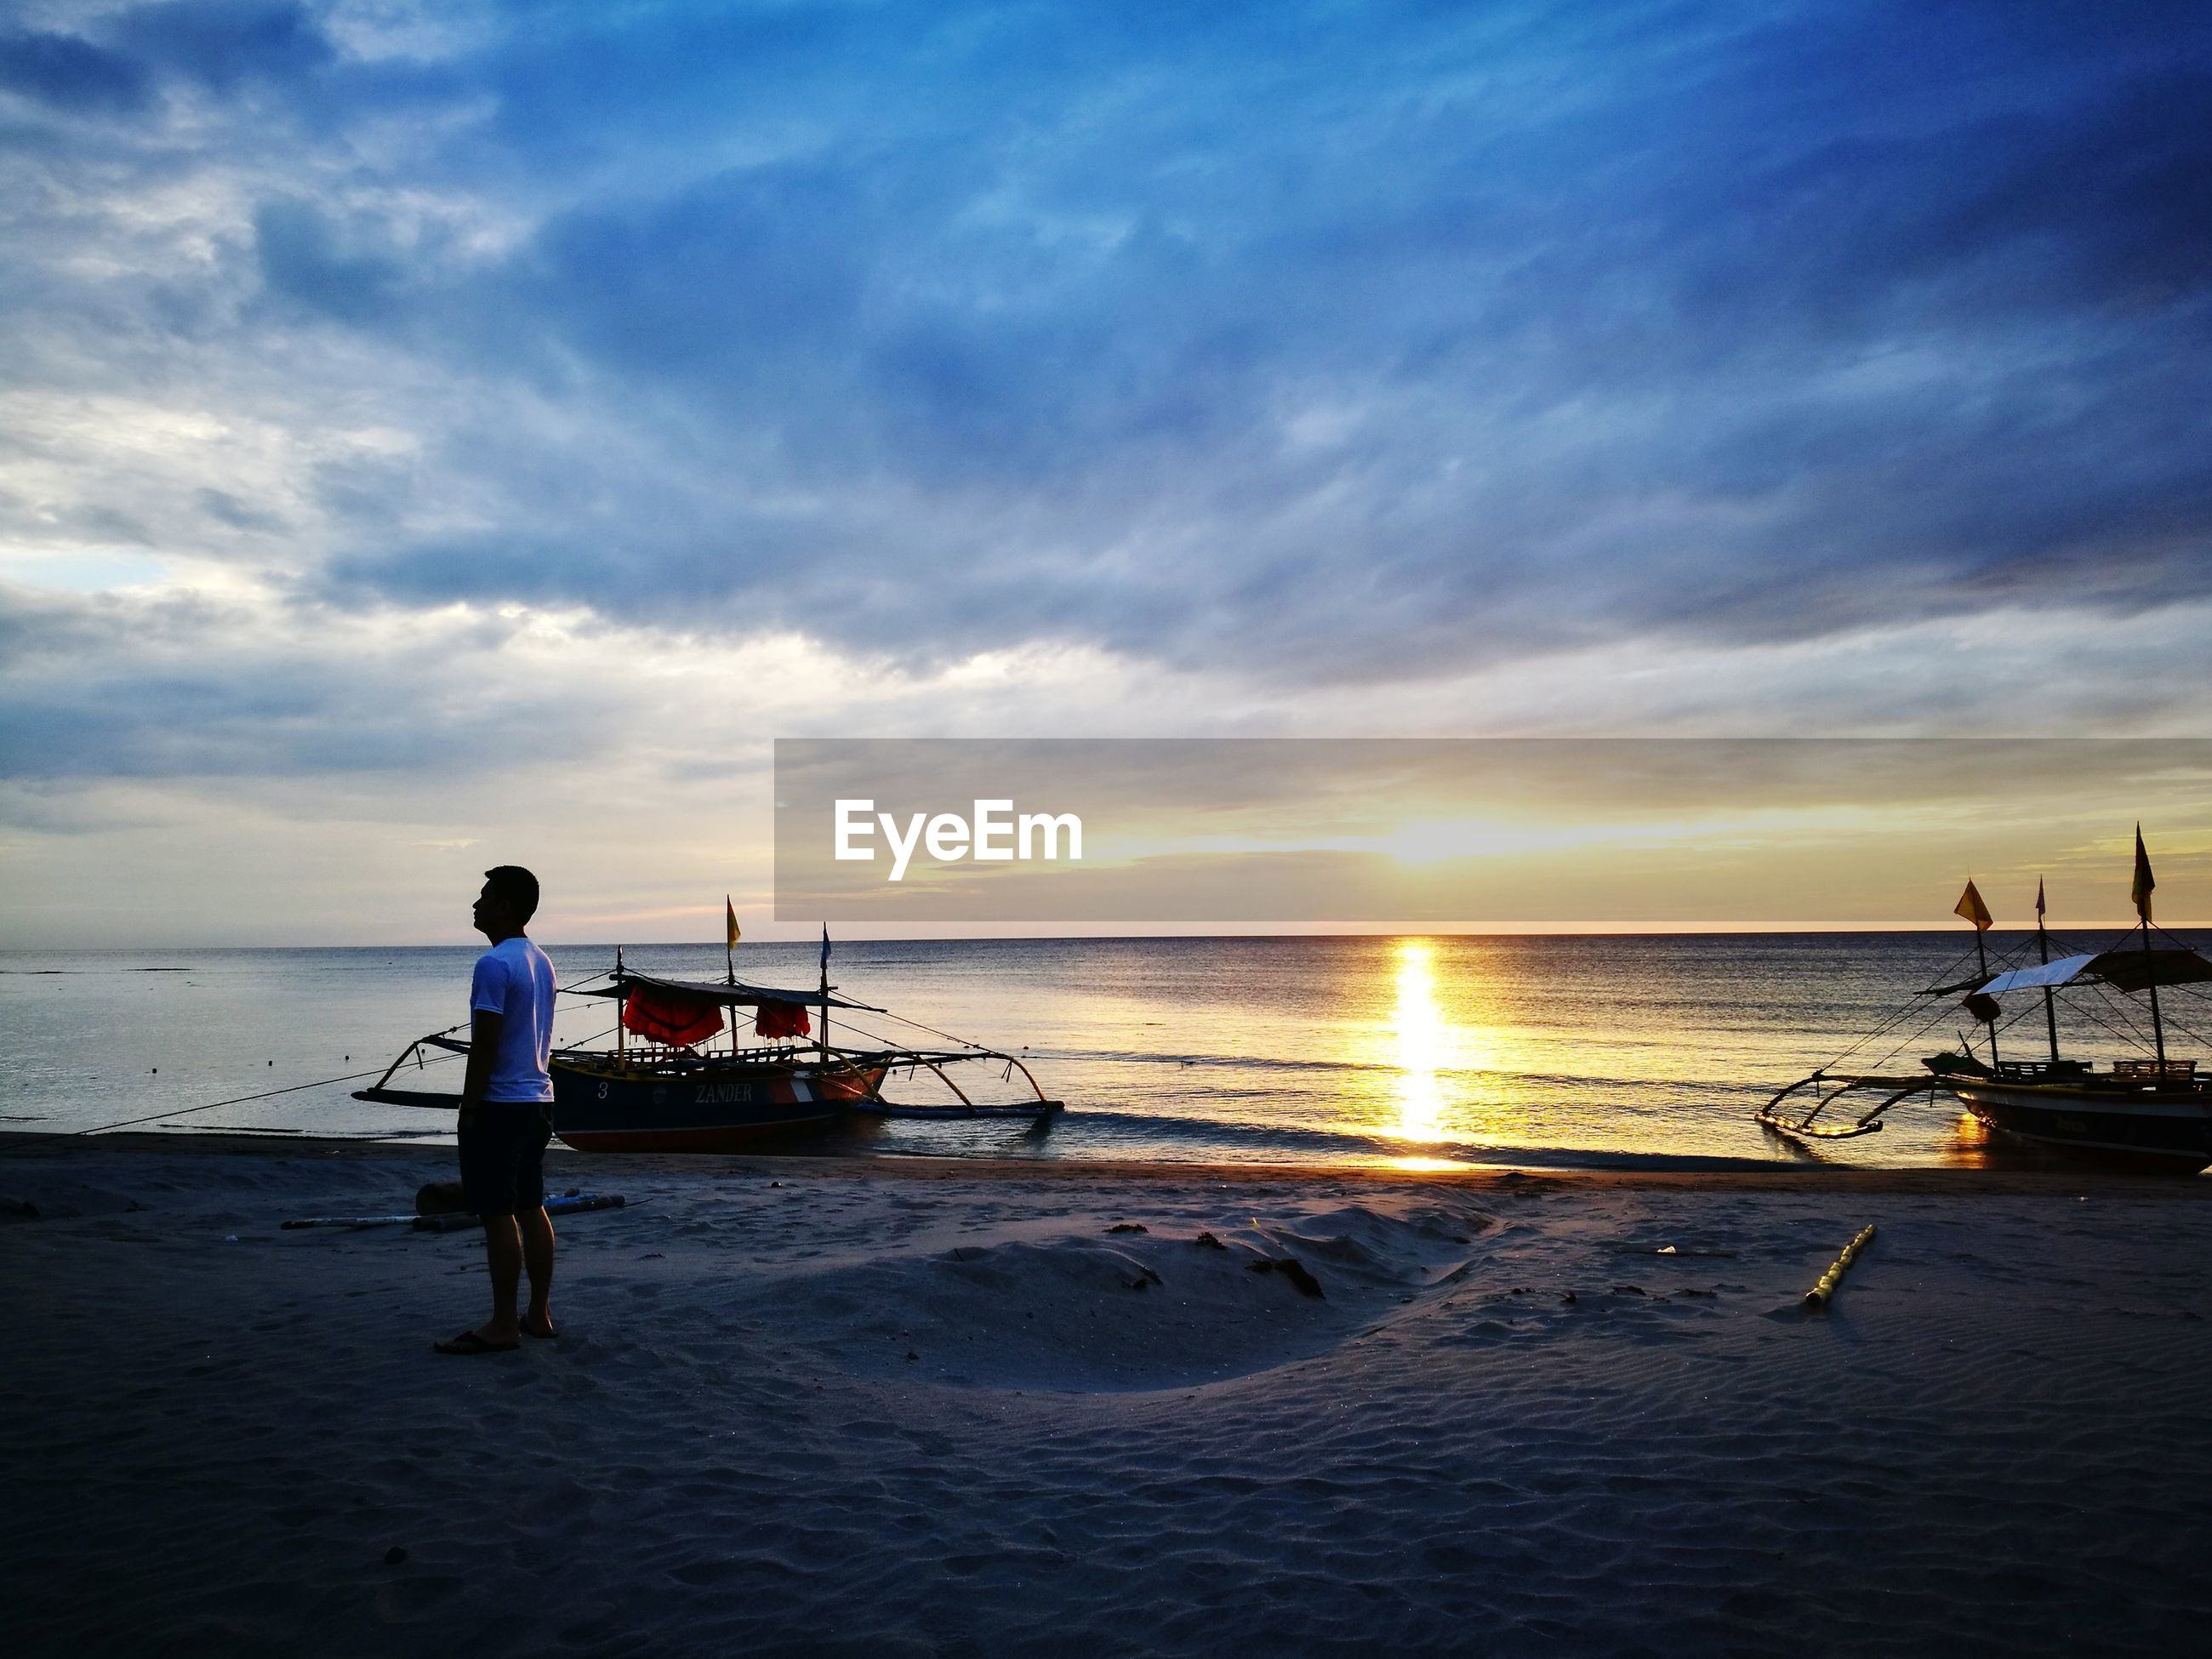 fishing, sunset, sea, water, occupation, sky, beauty in nature, fishing net, nautical vessel, fisherman, cloud - sky, nature, outdoors, tranquility, tranquil scene, men, only men, scenics, people, adult, beach, outdoor pursuit, one person, adults only, one man only, day